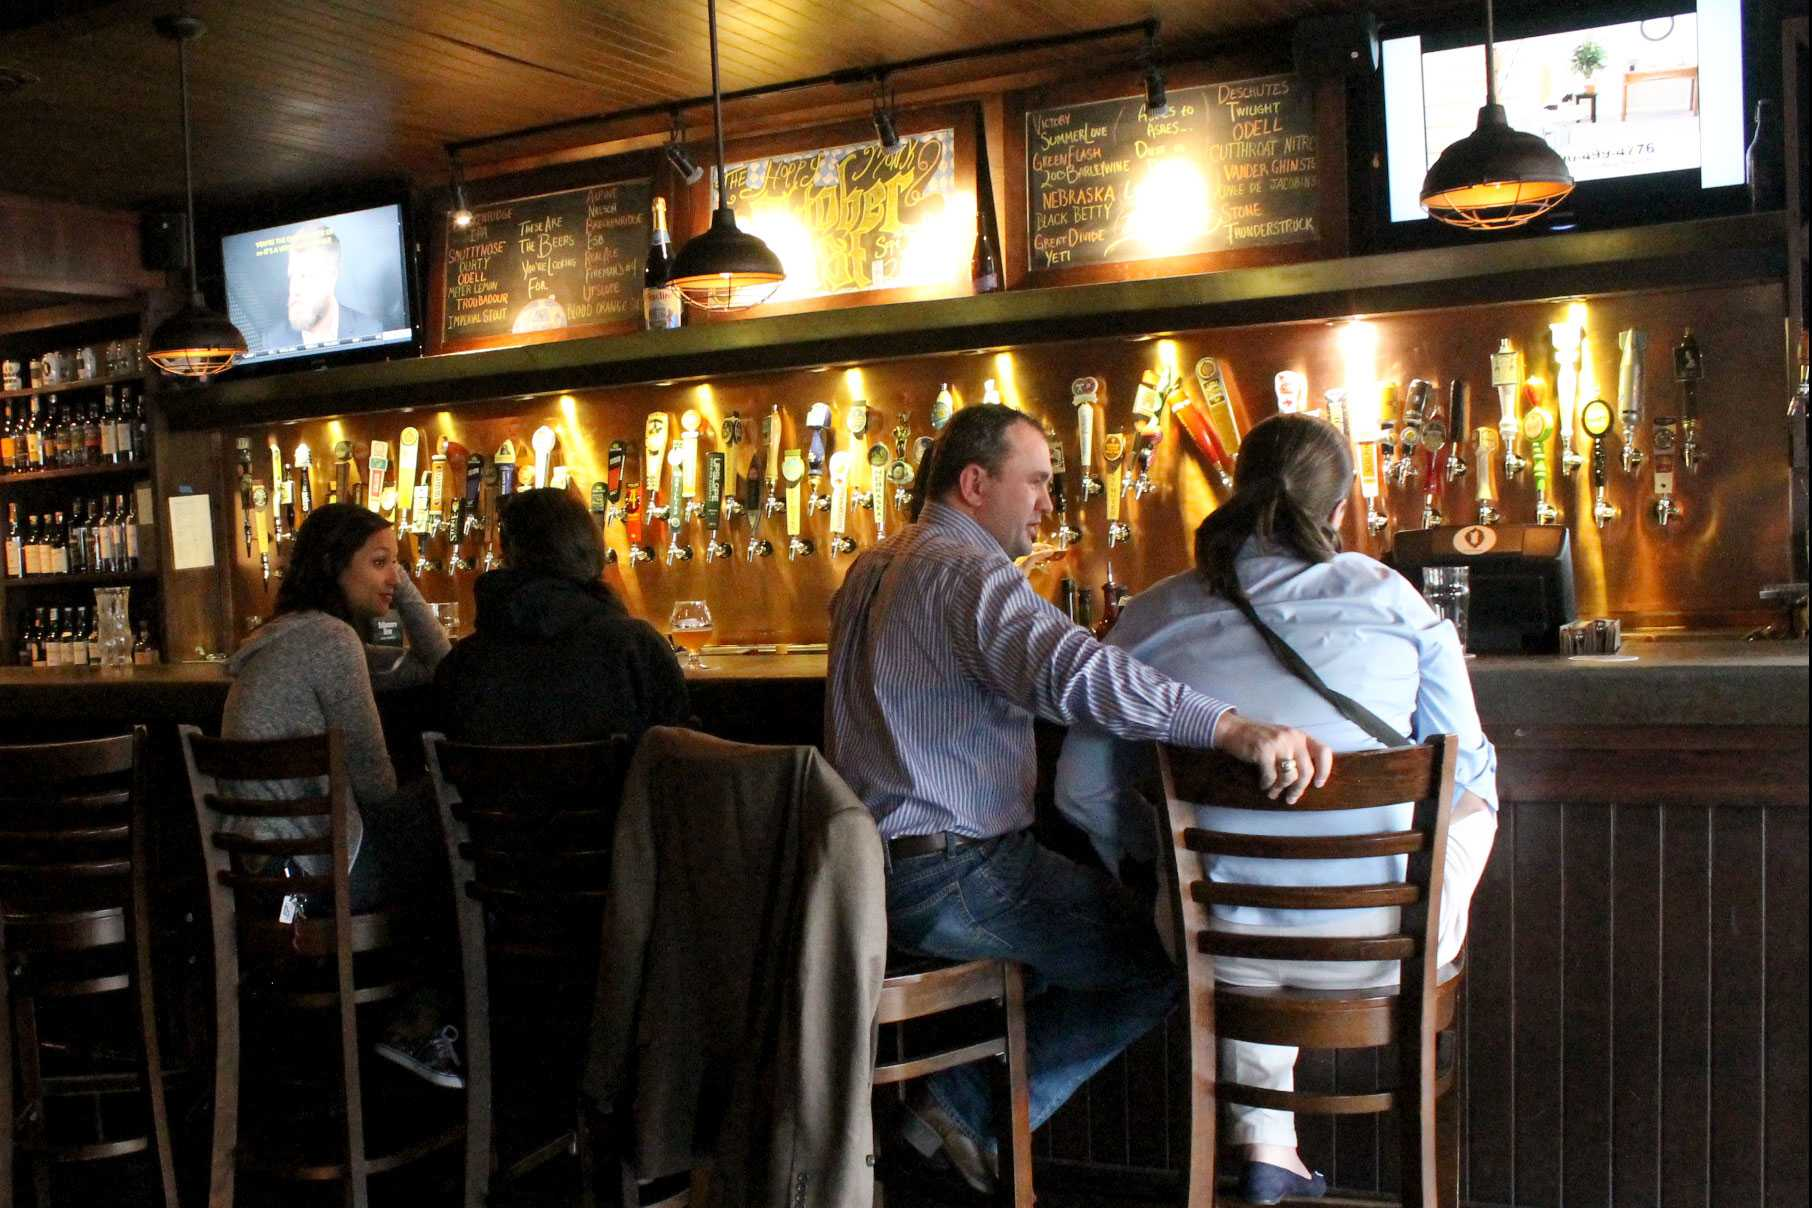 The Hoppy Monk, located at 4141 N. Mesa St. is a convenient location to grab a drink before or after the game.